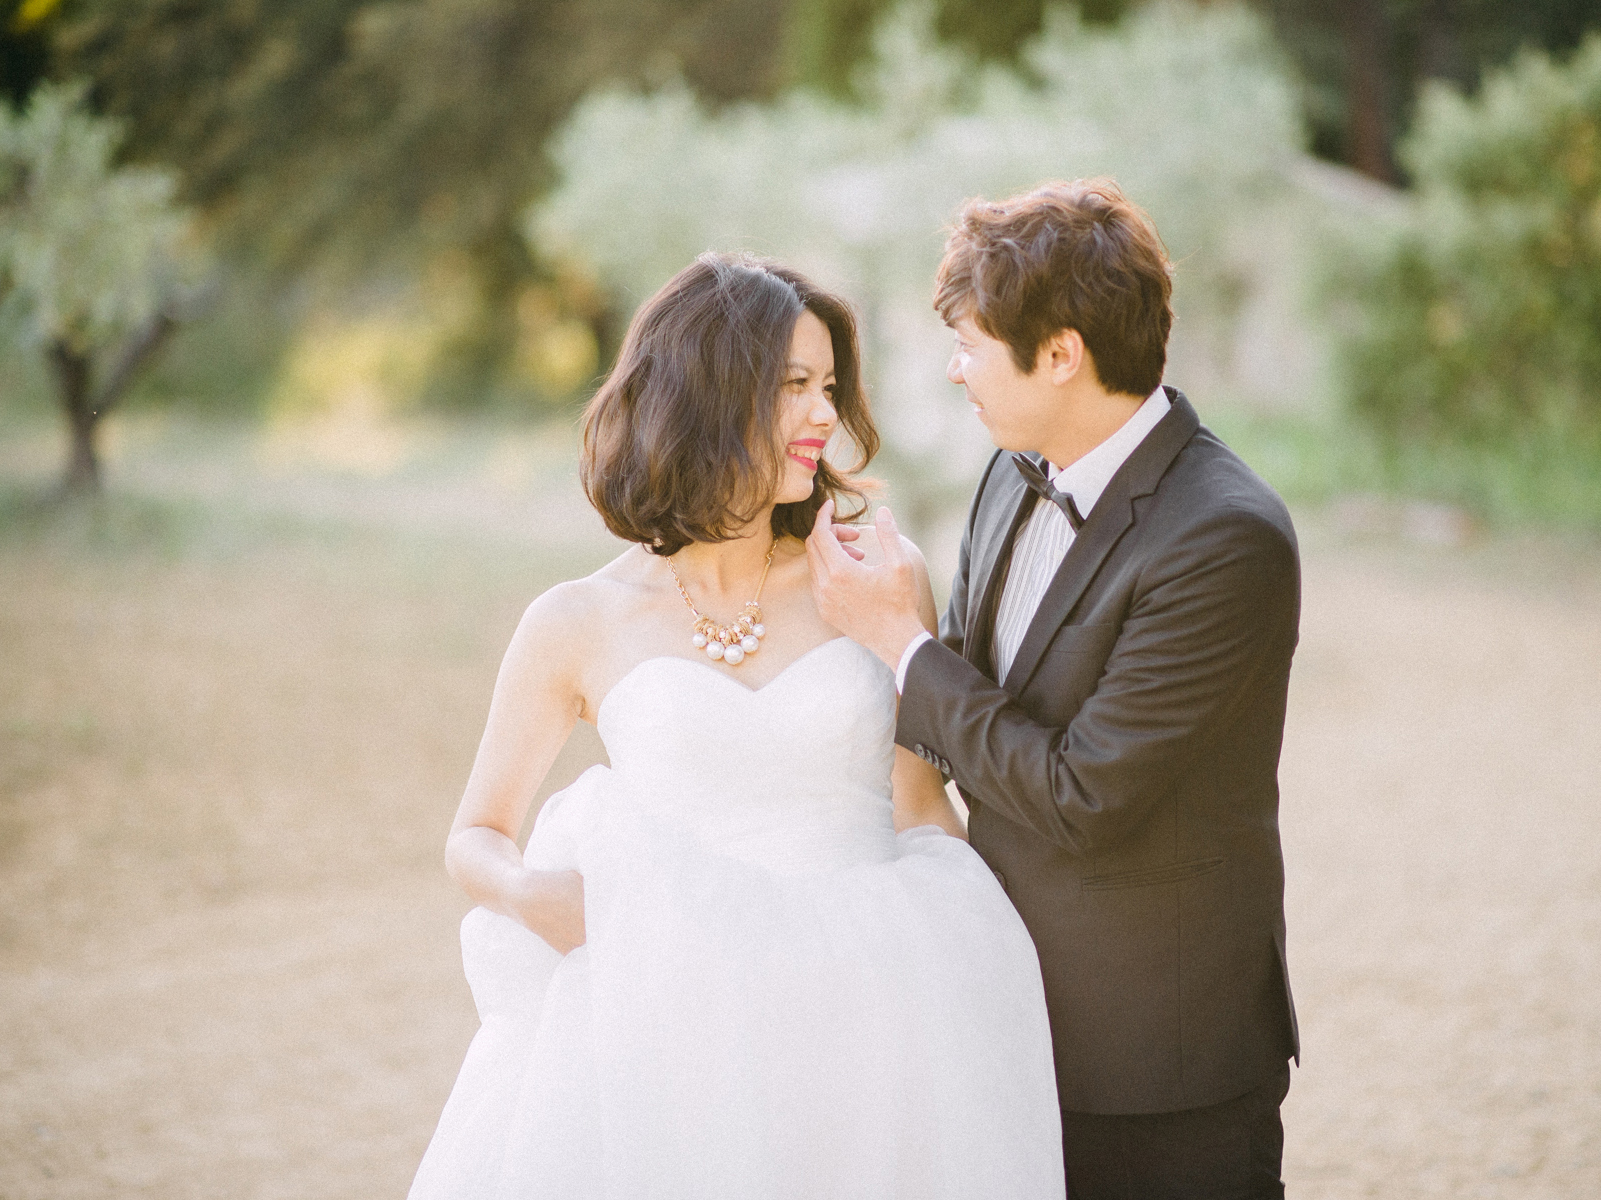 Boheme-Moon-Wedding-Photography-Taiwan-Pre-Wedding-Provence_18.jpg